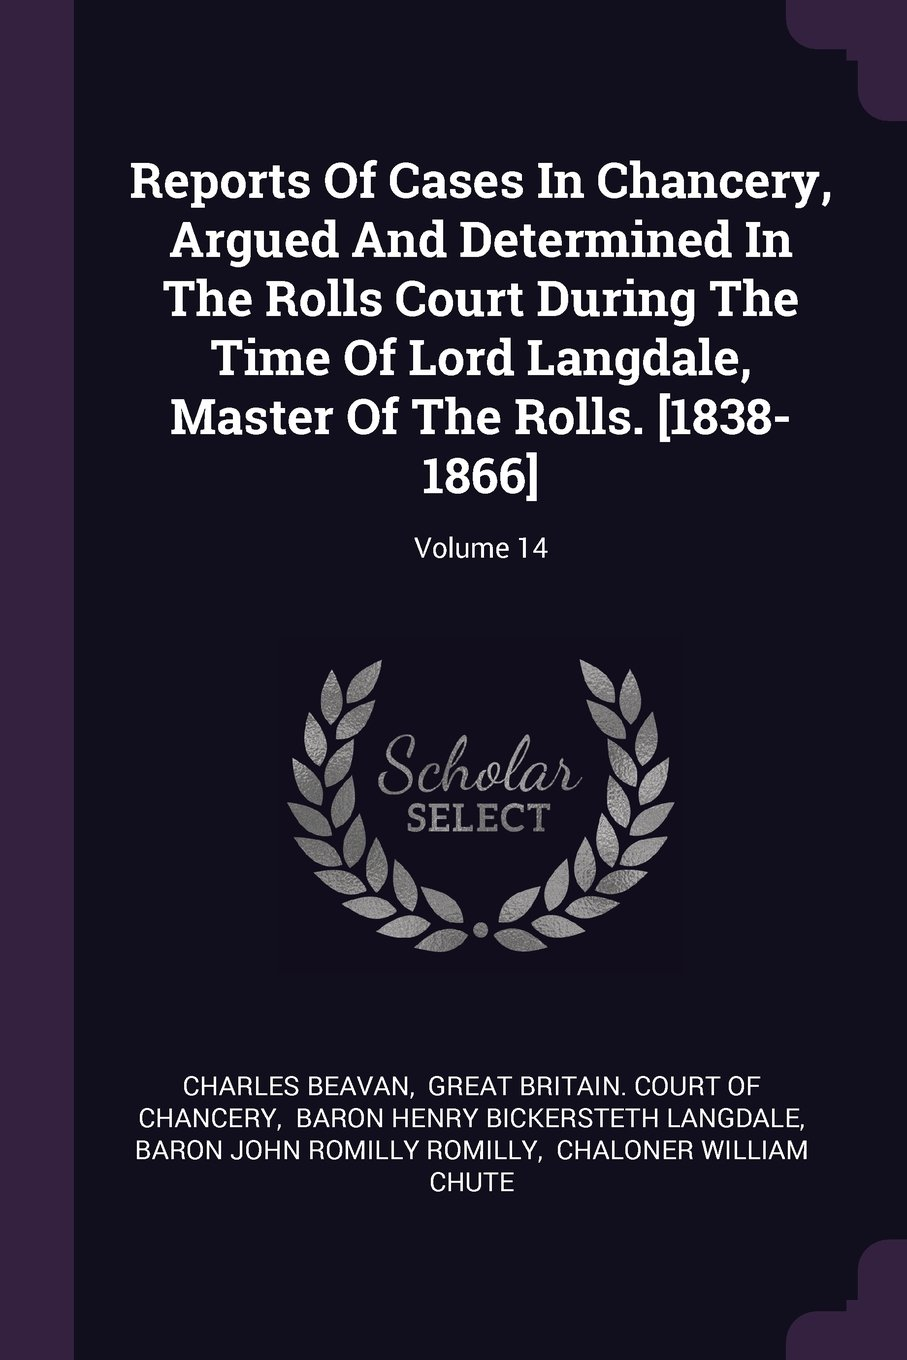 Reports Of Cases In Chancery, Argued And Determined In The Rolls Court During The Time Of Lord Langdale, Master Of The Rolls. [1838-1866]; Volume 14 pdf epub